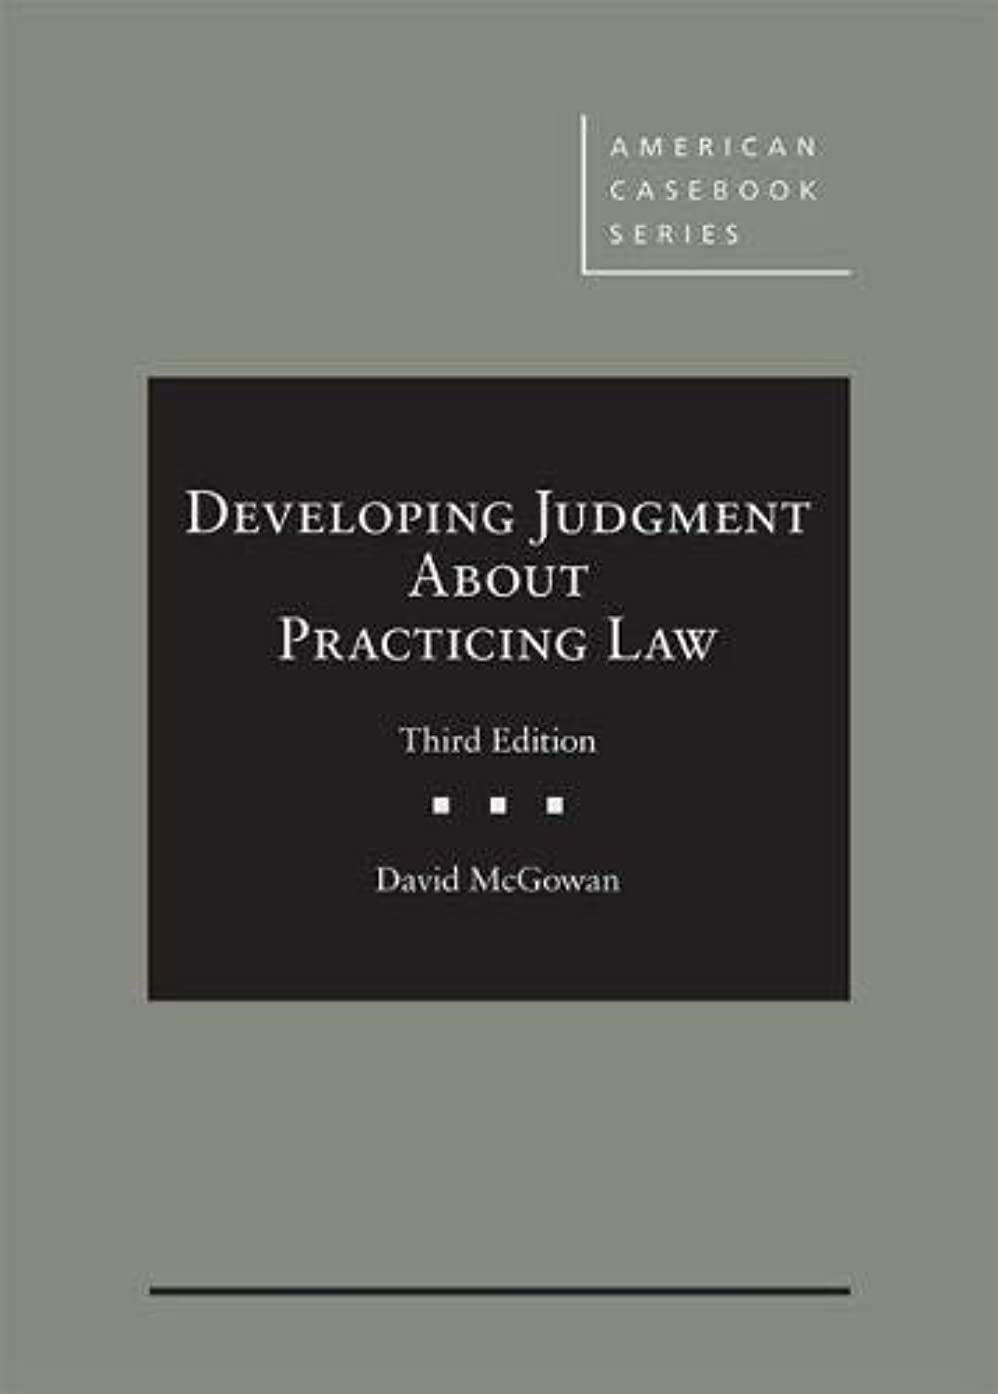 Developing Judgment About Practicing Law (American Casebook Series)